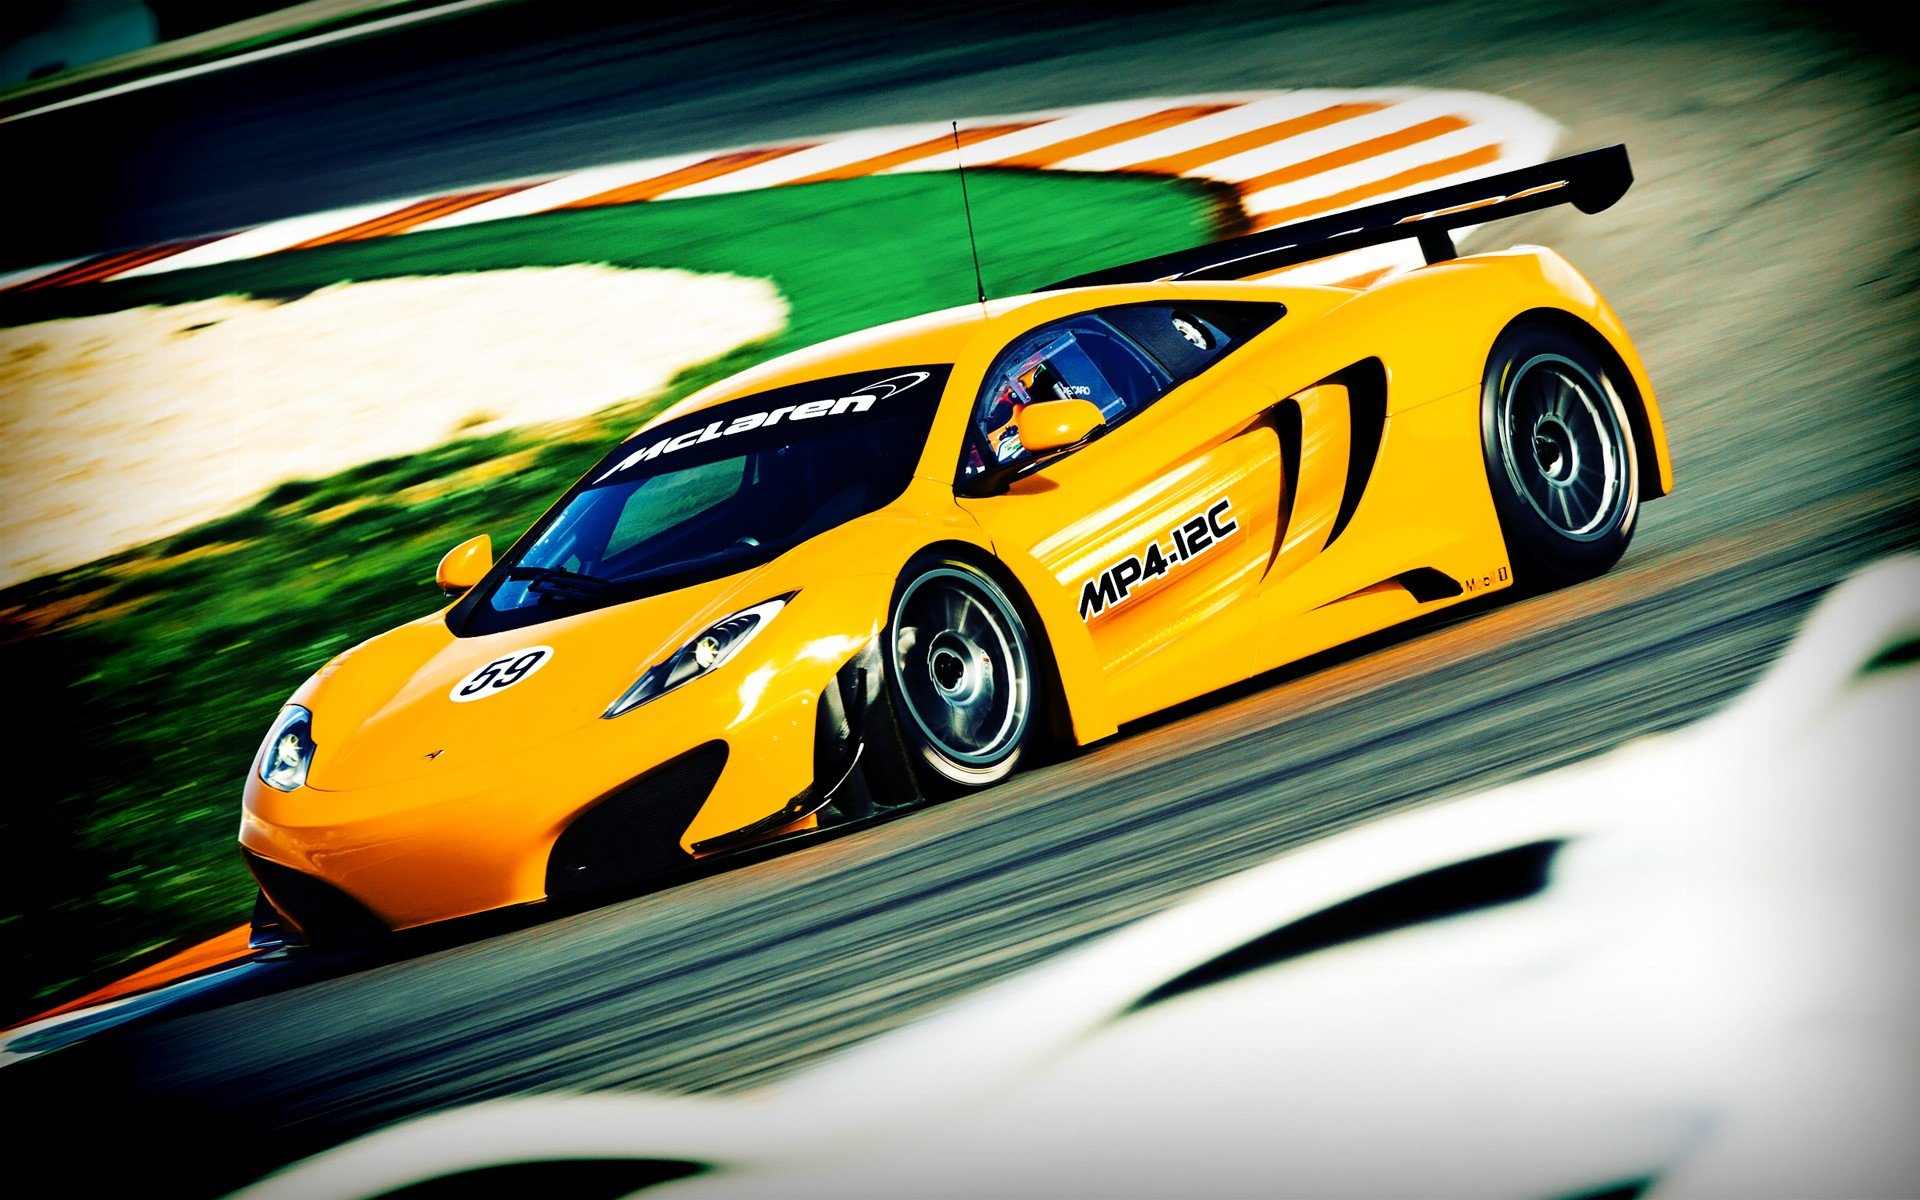 cars Le Mans supercars racing McLaren MP4-12C